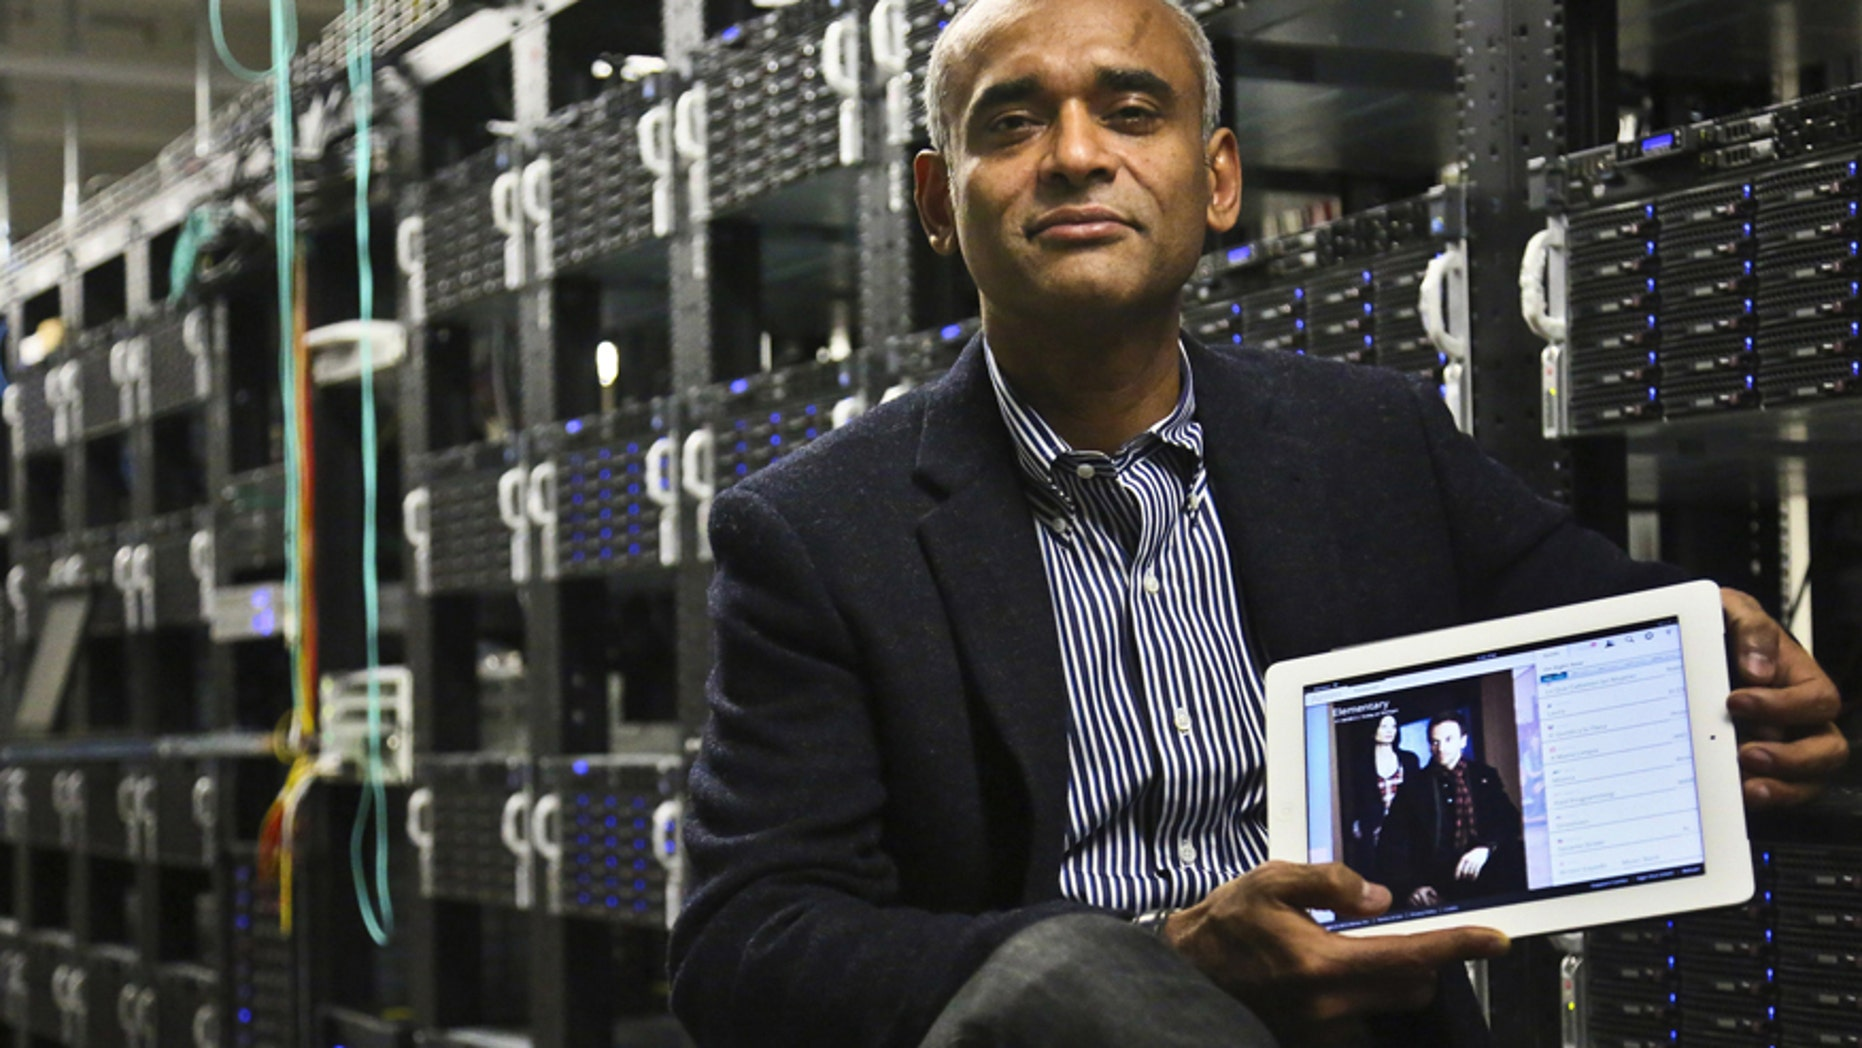 This Dec. 20, 2012 file photo shows Chet Kanojia, founder and CEO of Aereo, Inc., holding a tablet displaying his company's technology.